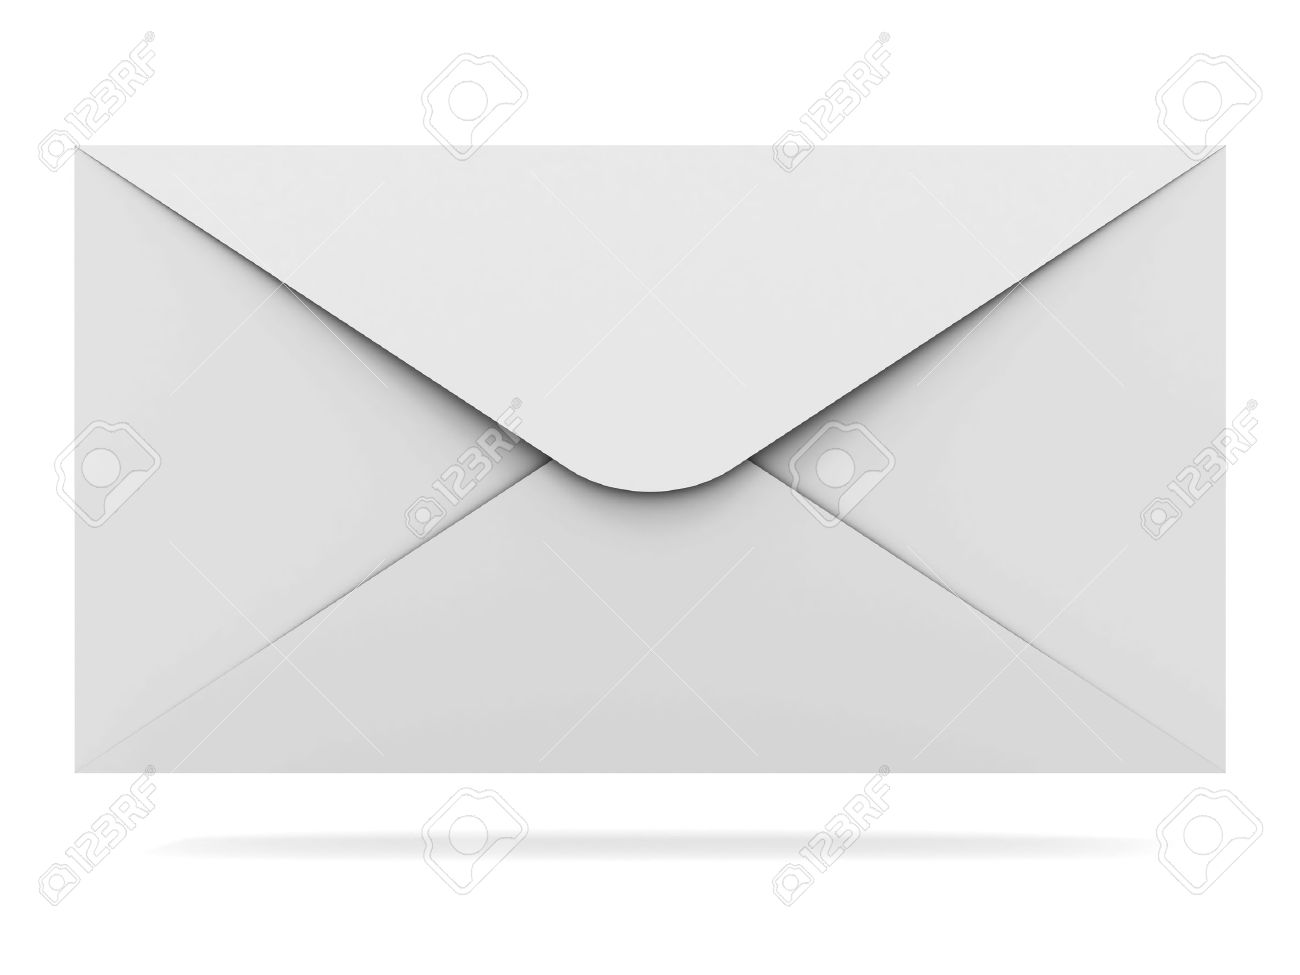 Mail envelope isolated on white background with shadow Stock Photo - 12432535